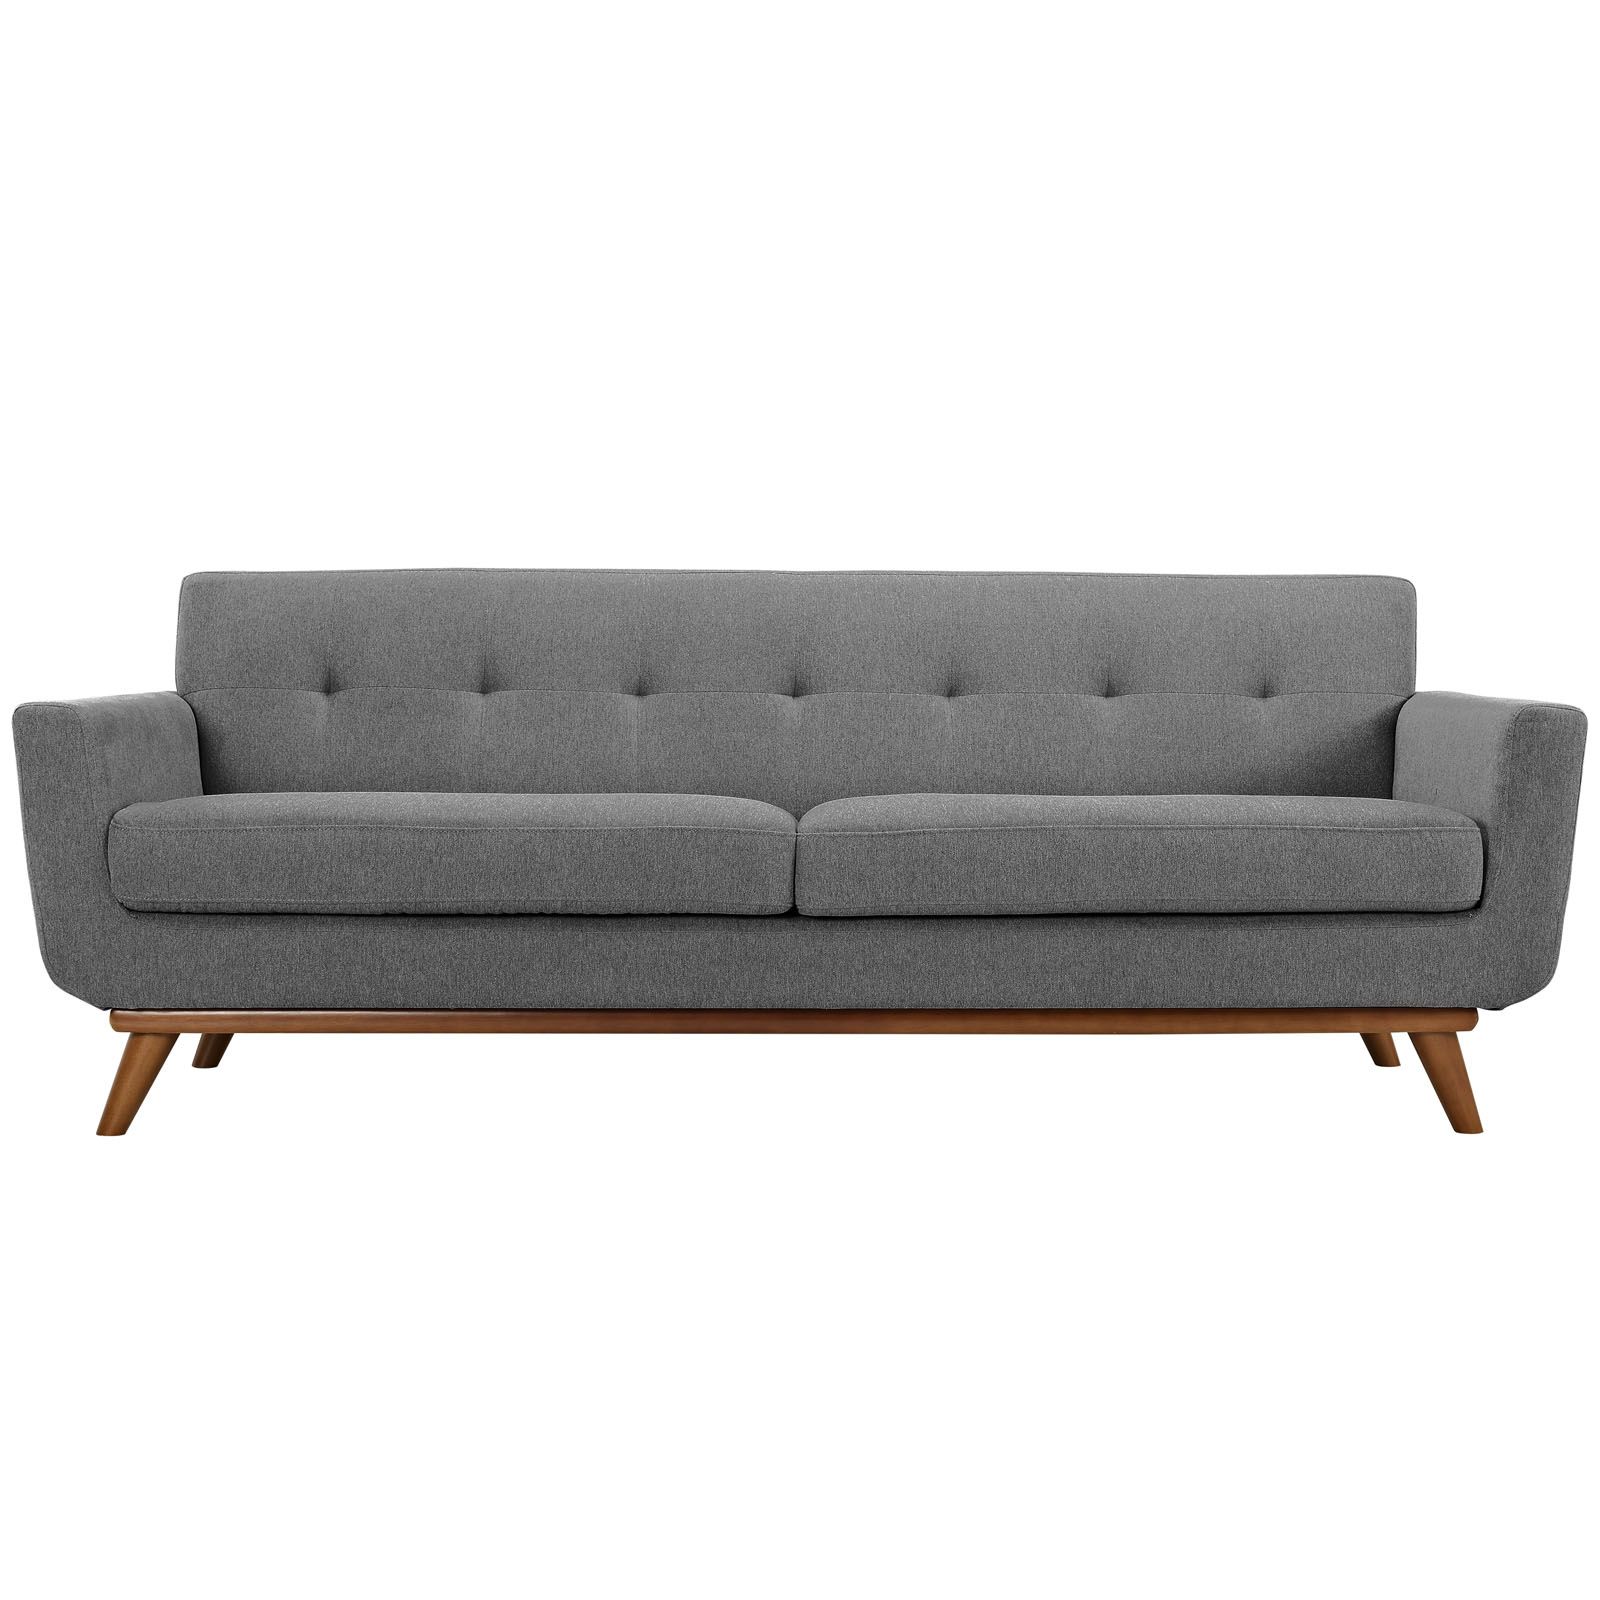 Sofas Under $300 #43 - Sofas U0026 Couches - Walmart.com